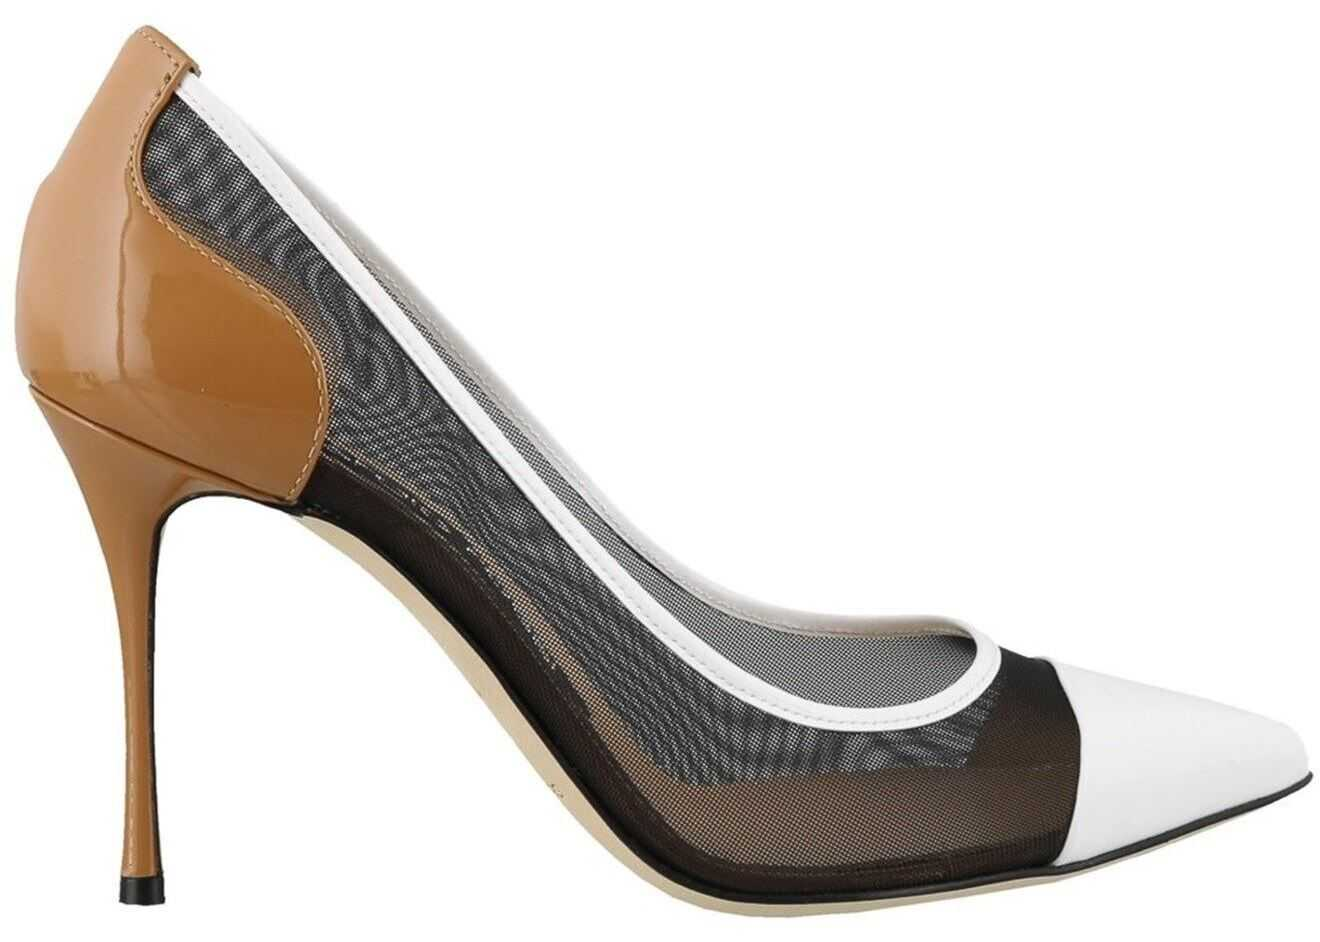 Sergio Rossi Fabric And Patent Leather Pumps Black